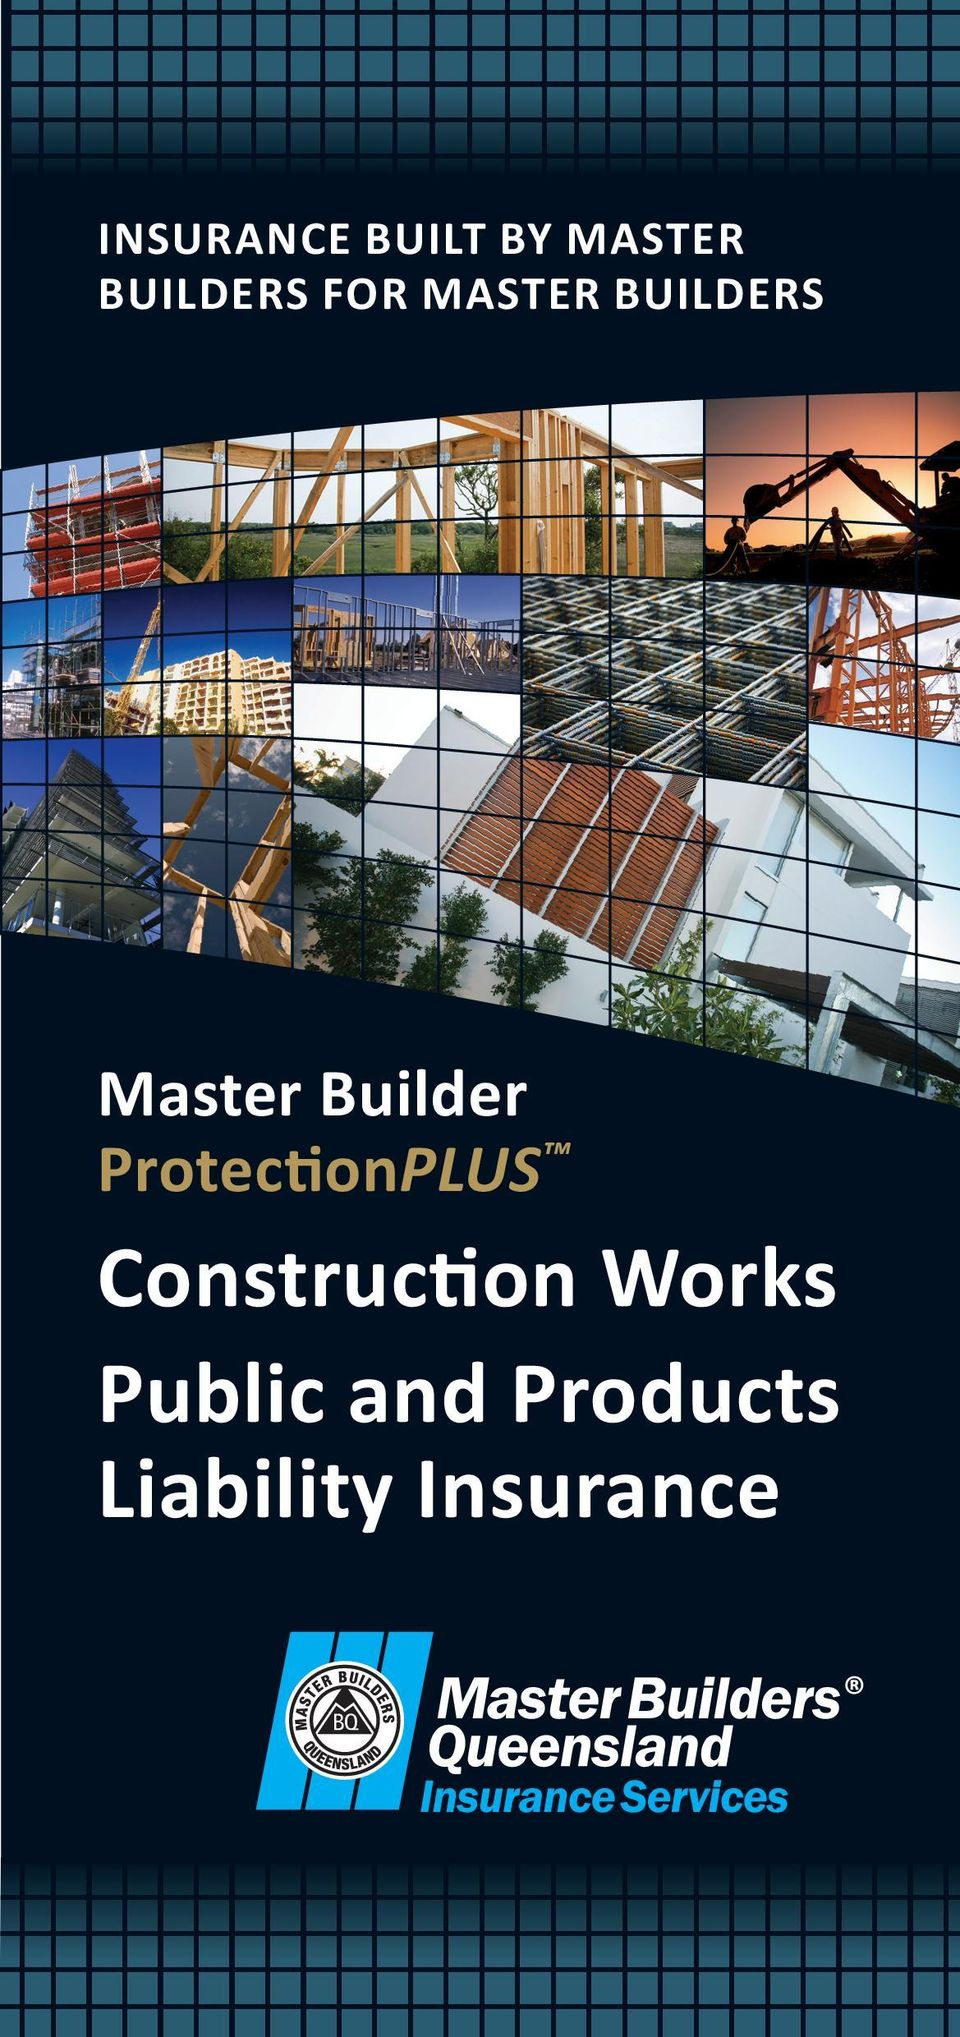 Protection Construction Works